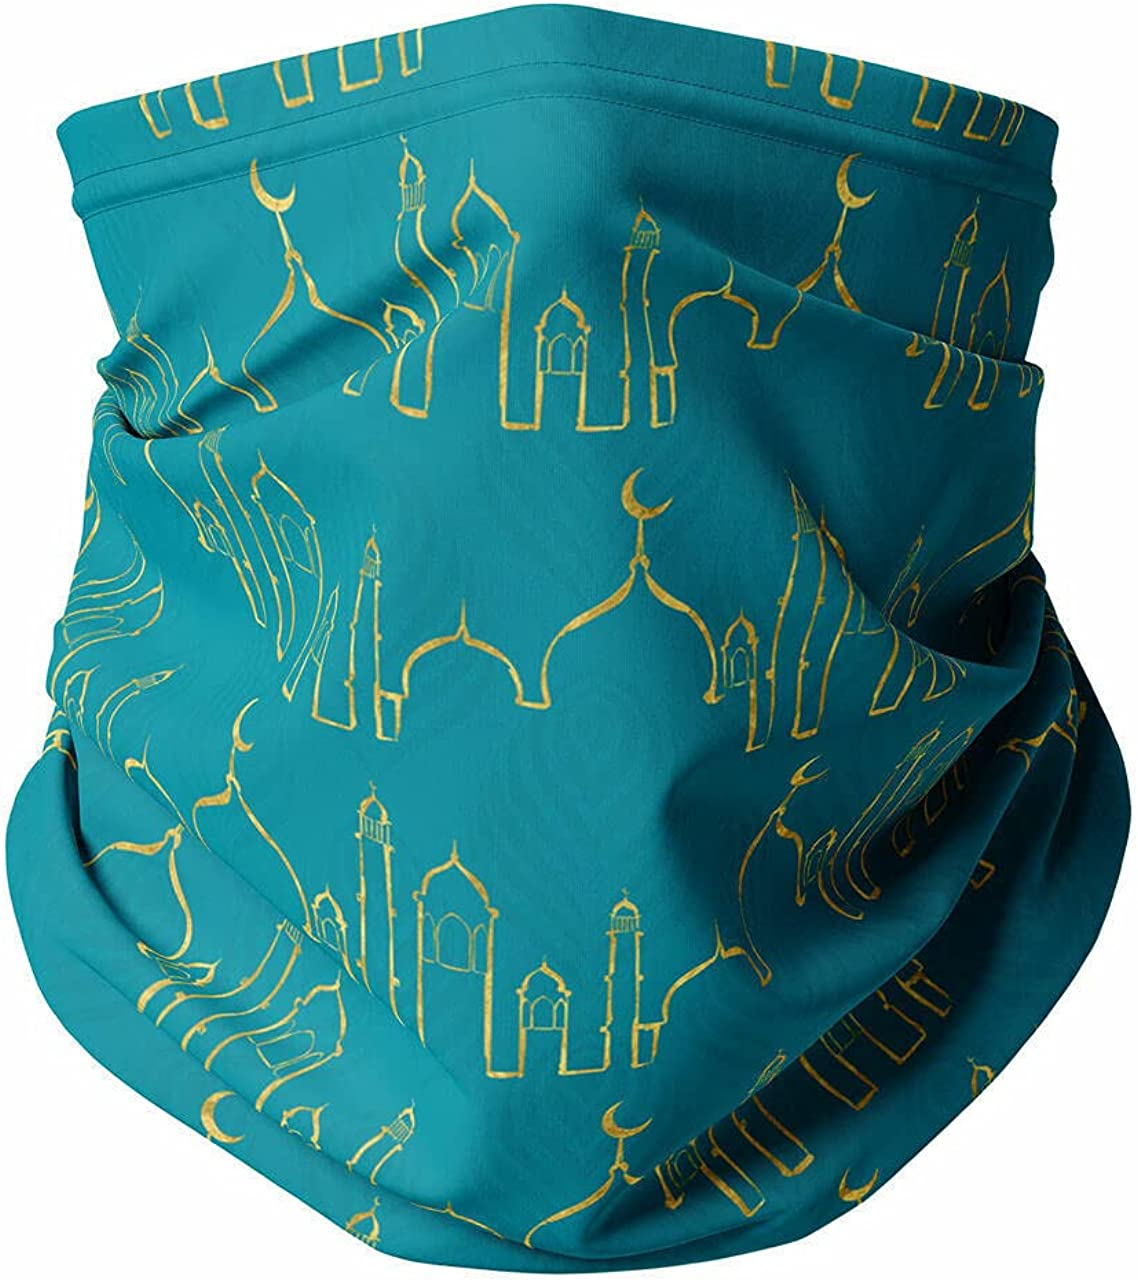 Neck Gaiter Face Covering - Arabian Nights in Agrabah Aladdin Inspired